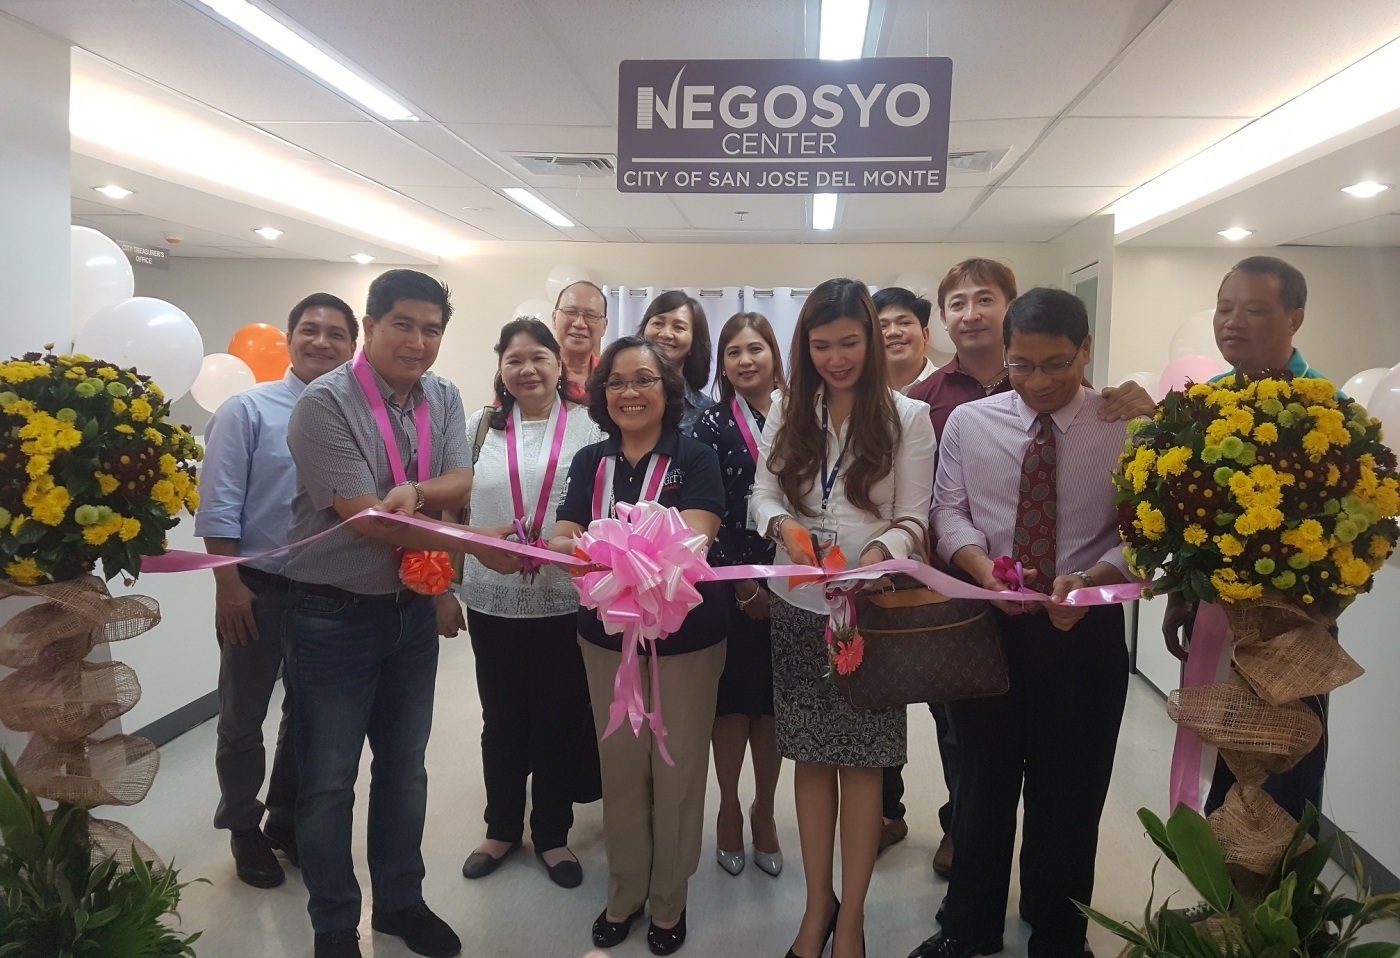 Launching of Negosyo Center. Gracing the ribbon cutting ceremony are (L-R) SJDM City Mayor Arthur Robes, DTI Regional Operations Group UndersecretaryZenaida C. Maglaya, SCMC SM Supermalls Regional Manager for Operations Lea B. Casamayor, SJDM City Administrator Dennis Booth, Ph.D.